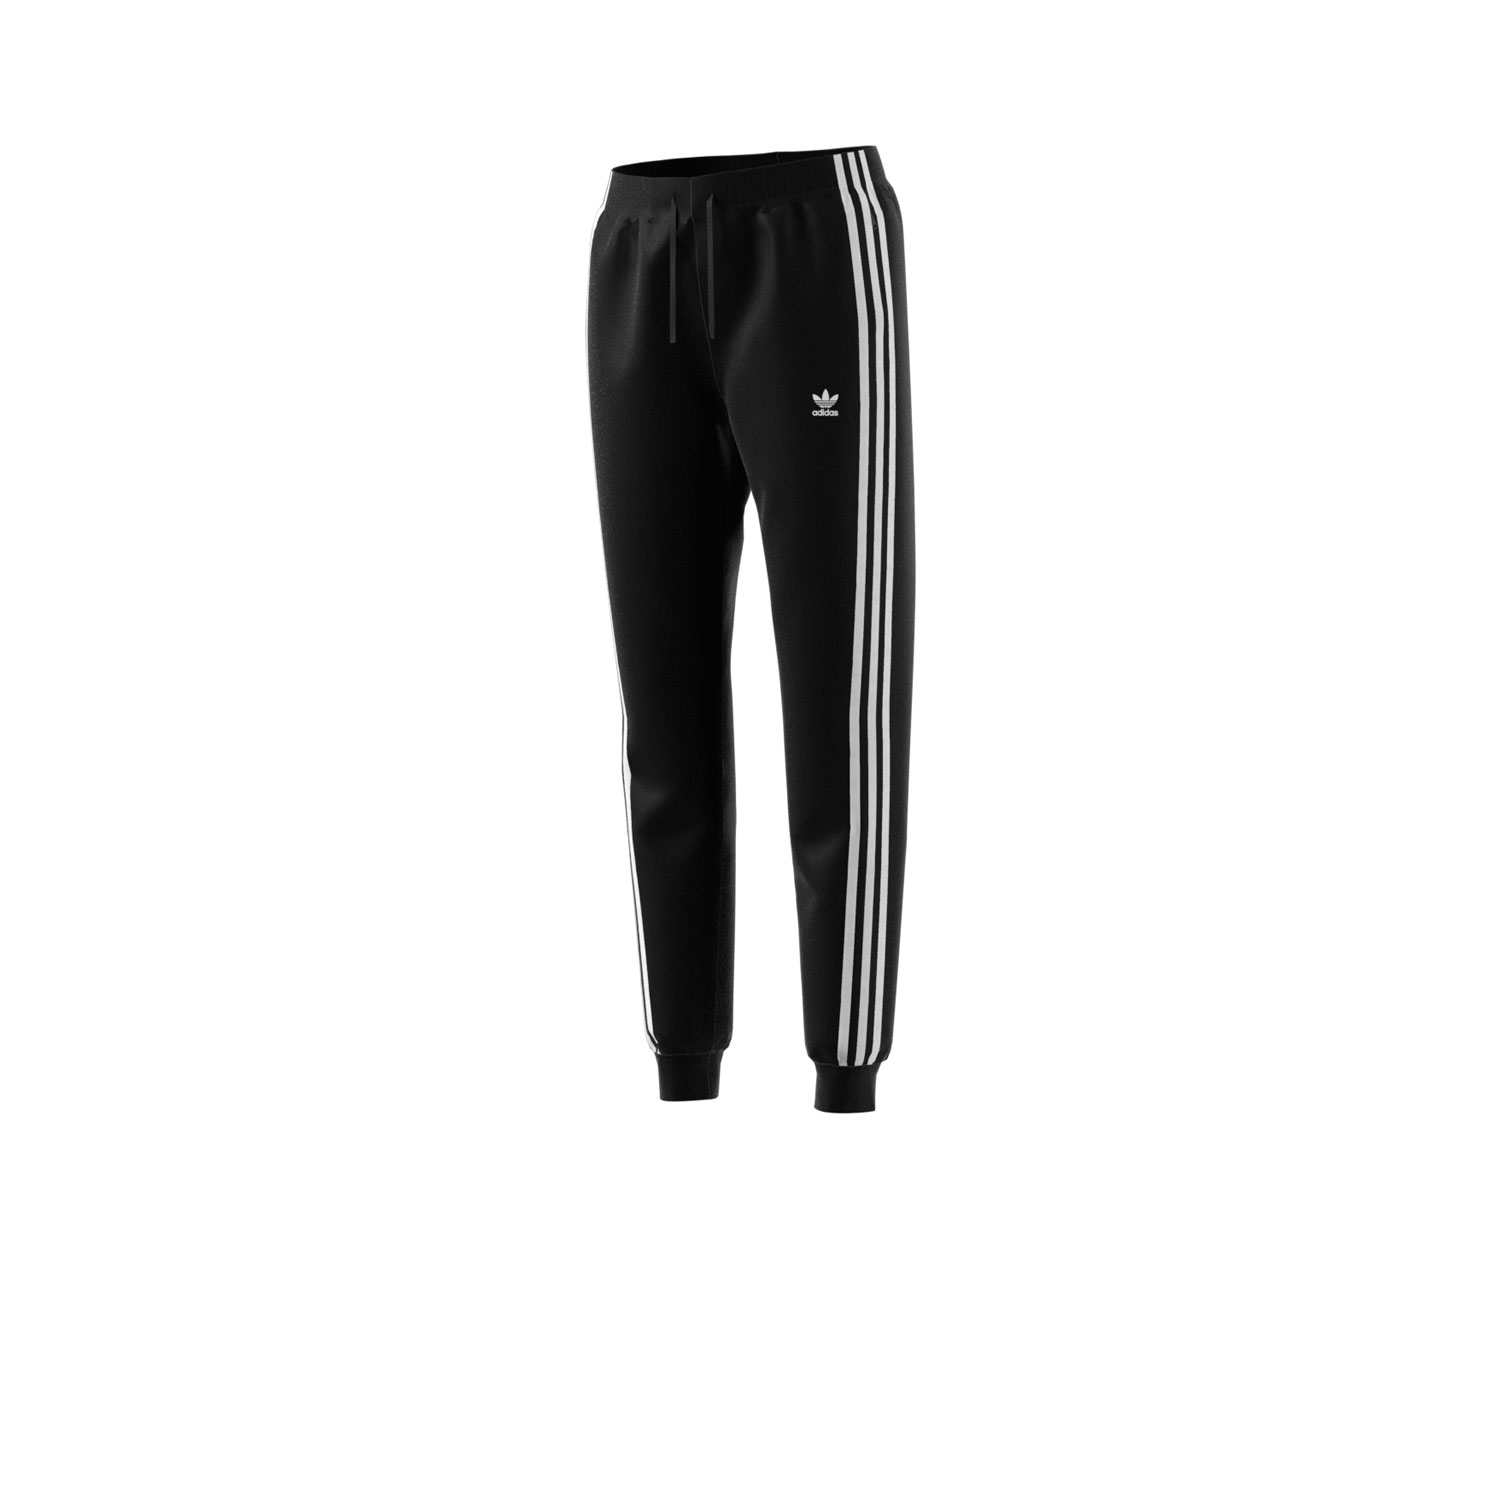 Details about Adidas Originals 3-Stripes Women's Cuffed Track Pants  Black/White dh3123